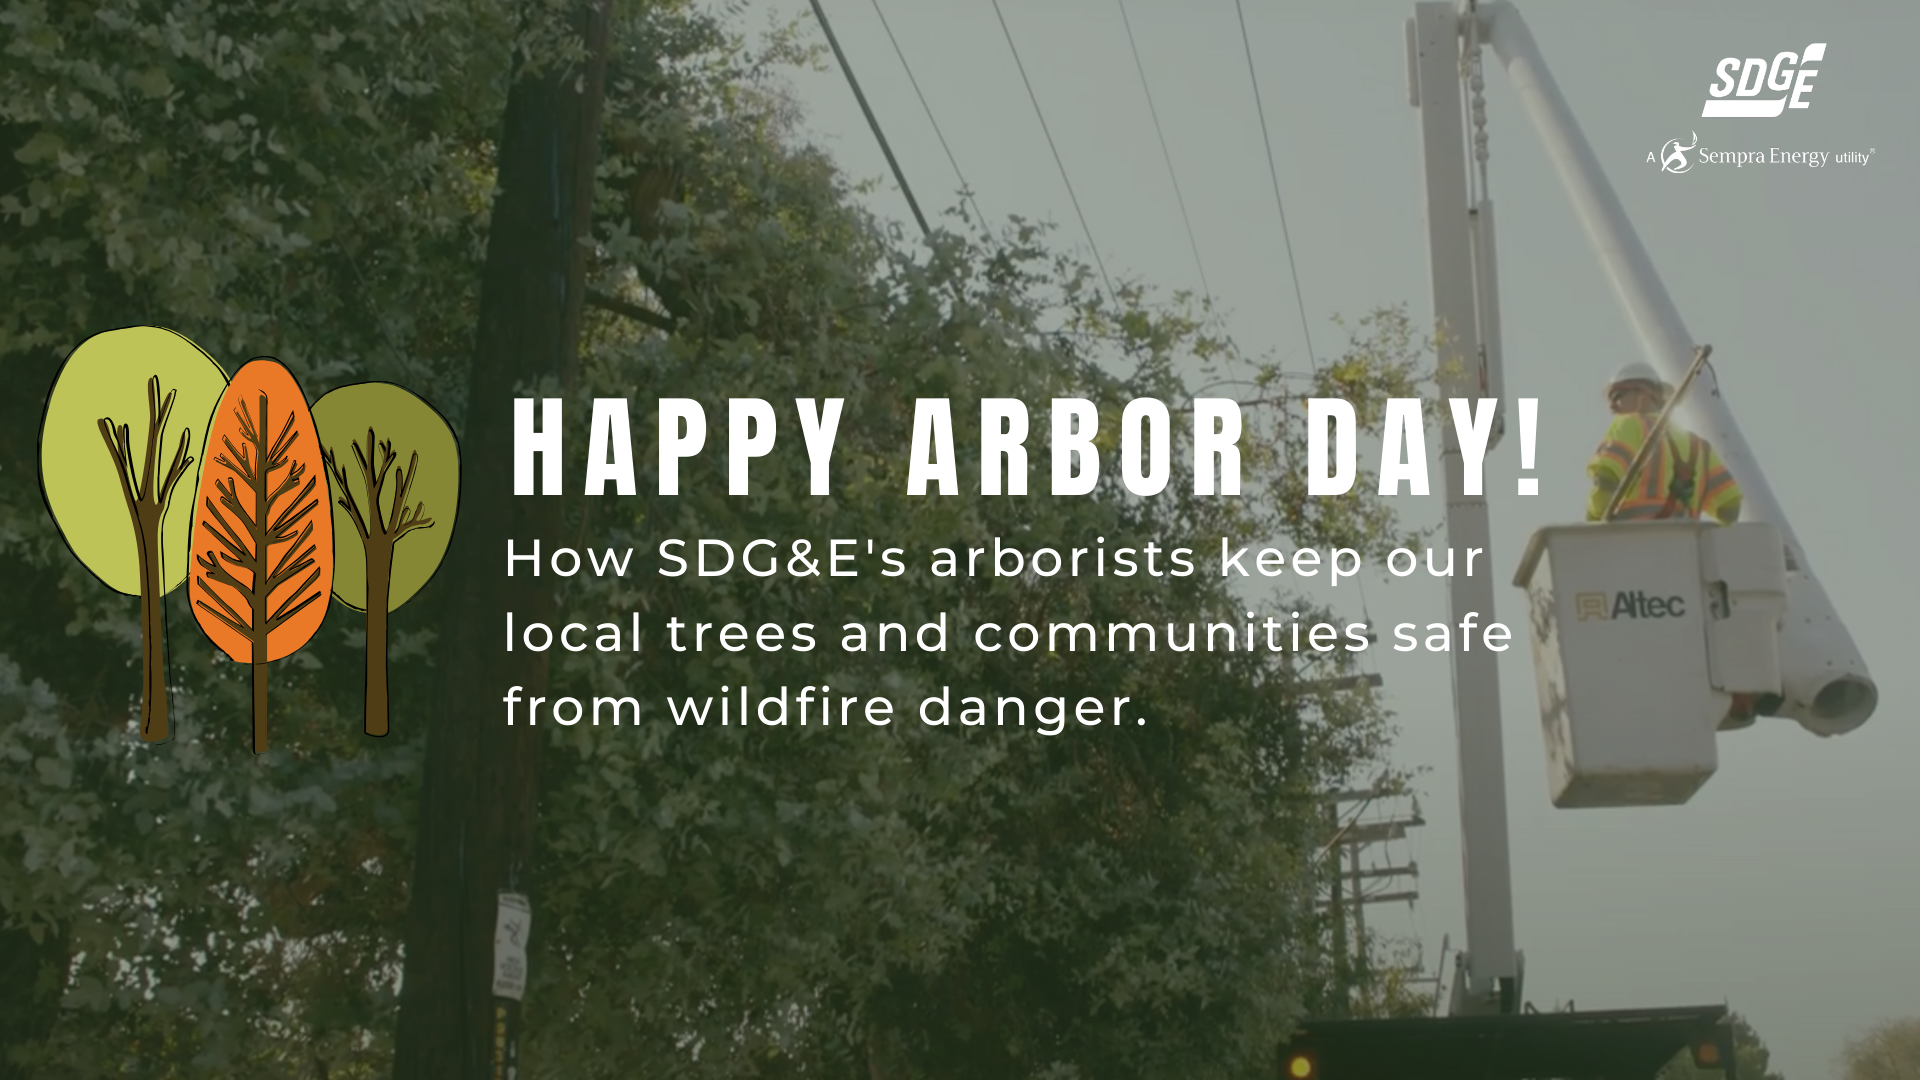 Arbor Day: SDG&E's Arborists Work to Keep Local Trees and Communities Safe